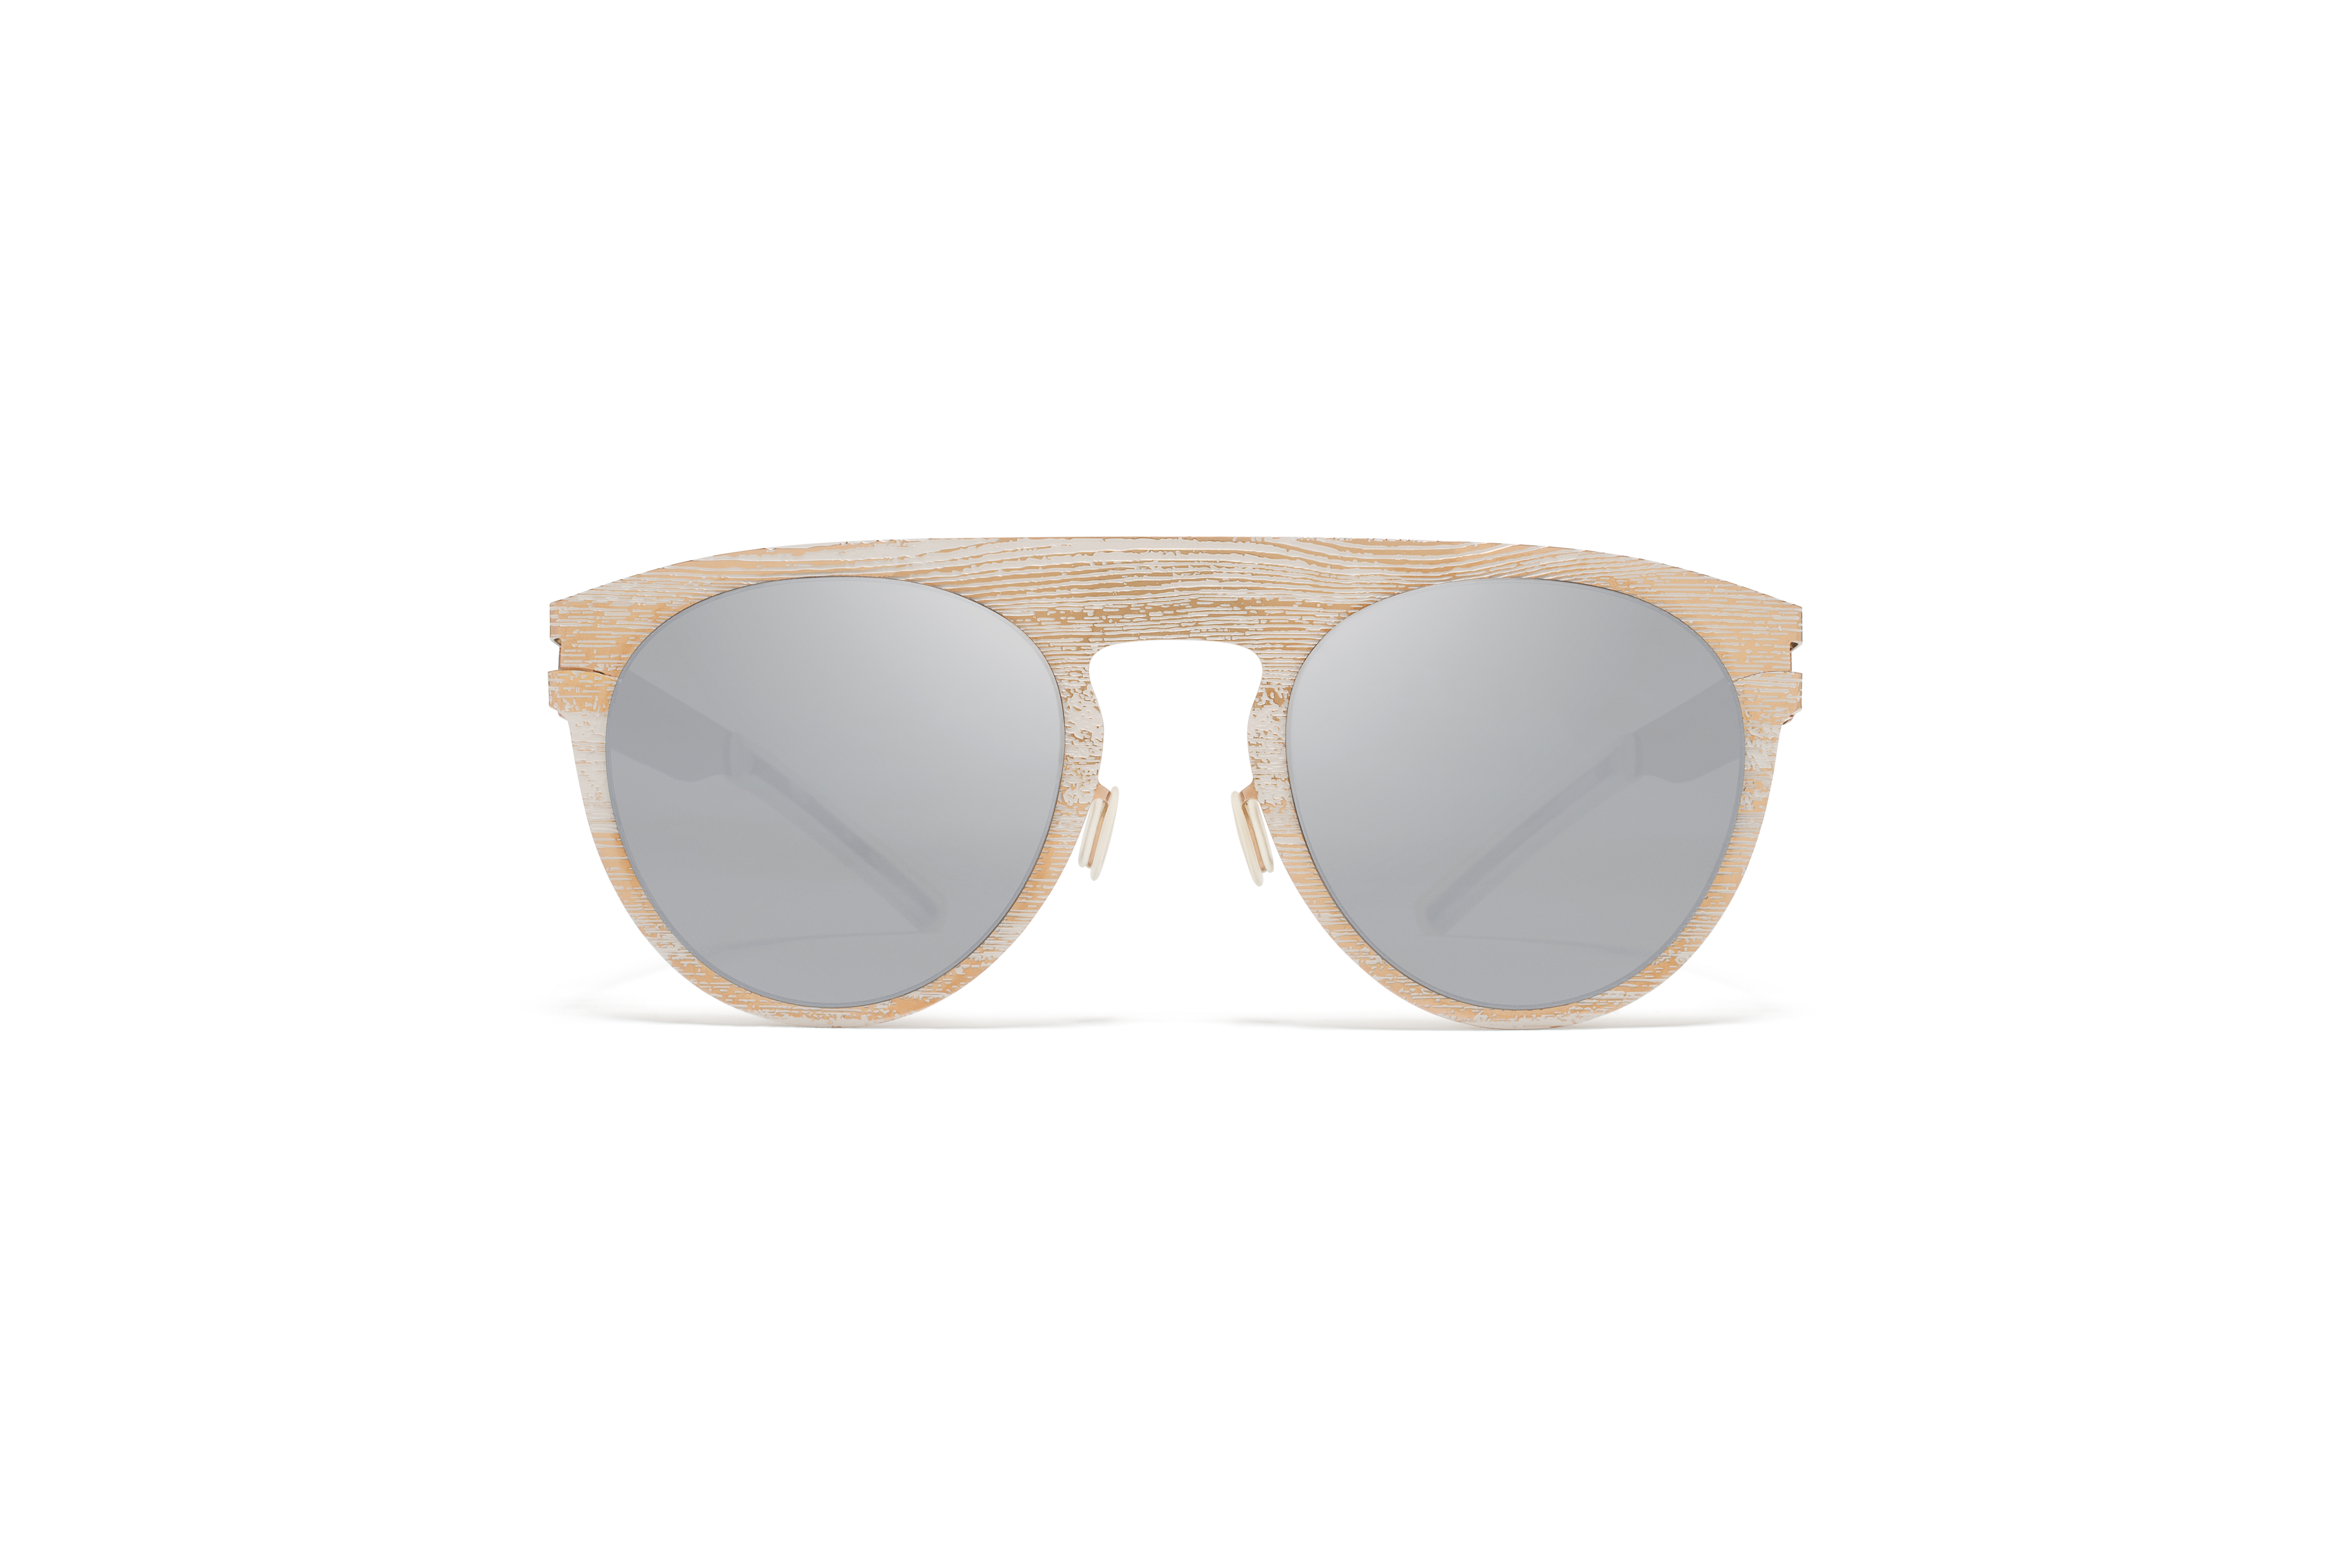 MYKITA Mm Sun Mmtransfer004 Rosegold Lightgrey P594a6f3f39901